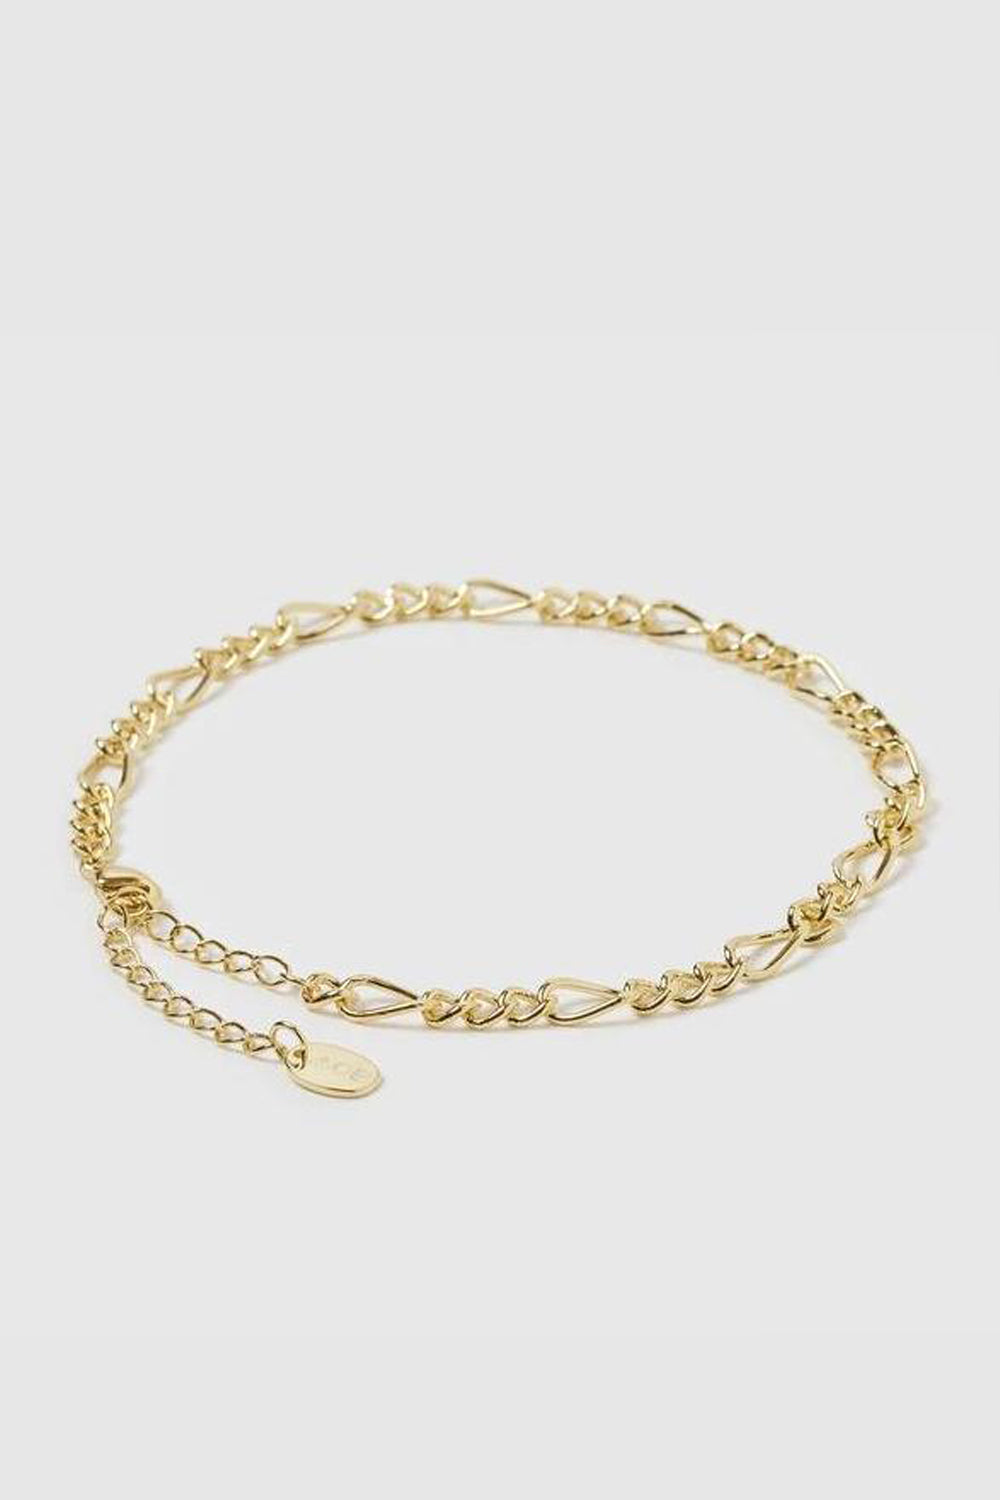 ARMS OF EVE - Isla Gold Anklet - Australian Fashion and Accessories Boutique - Faid Store